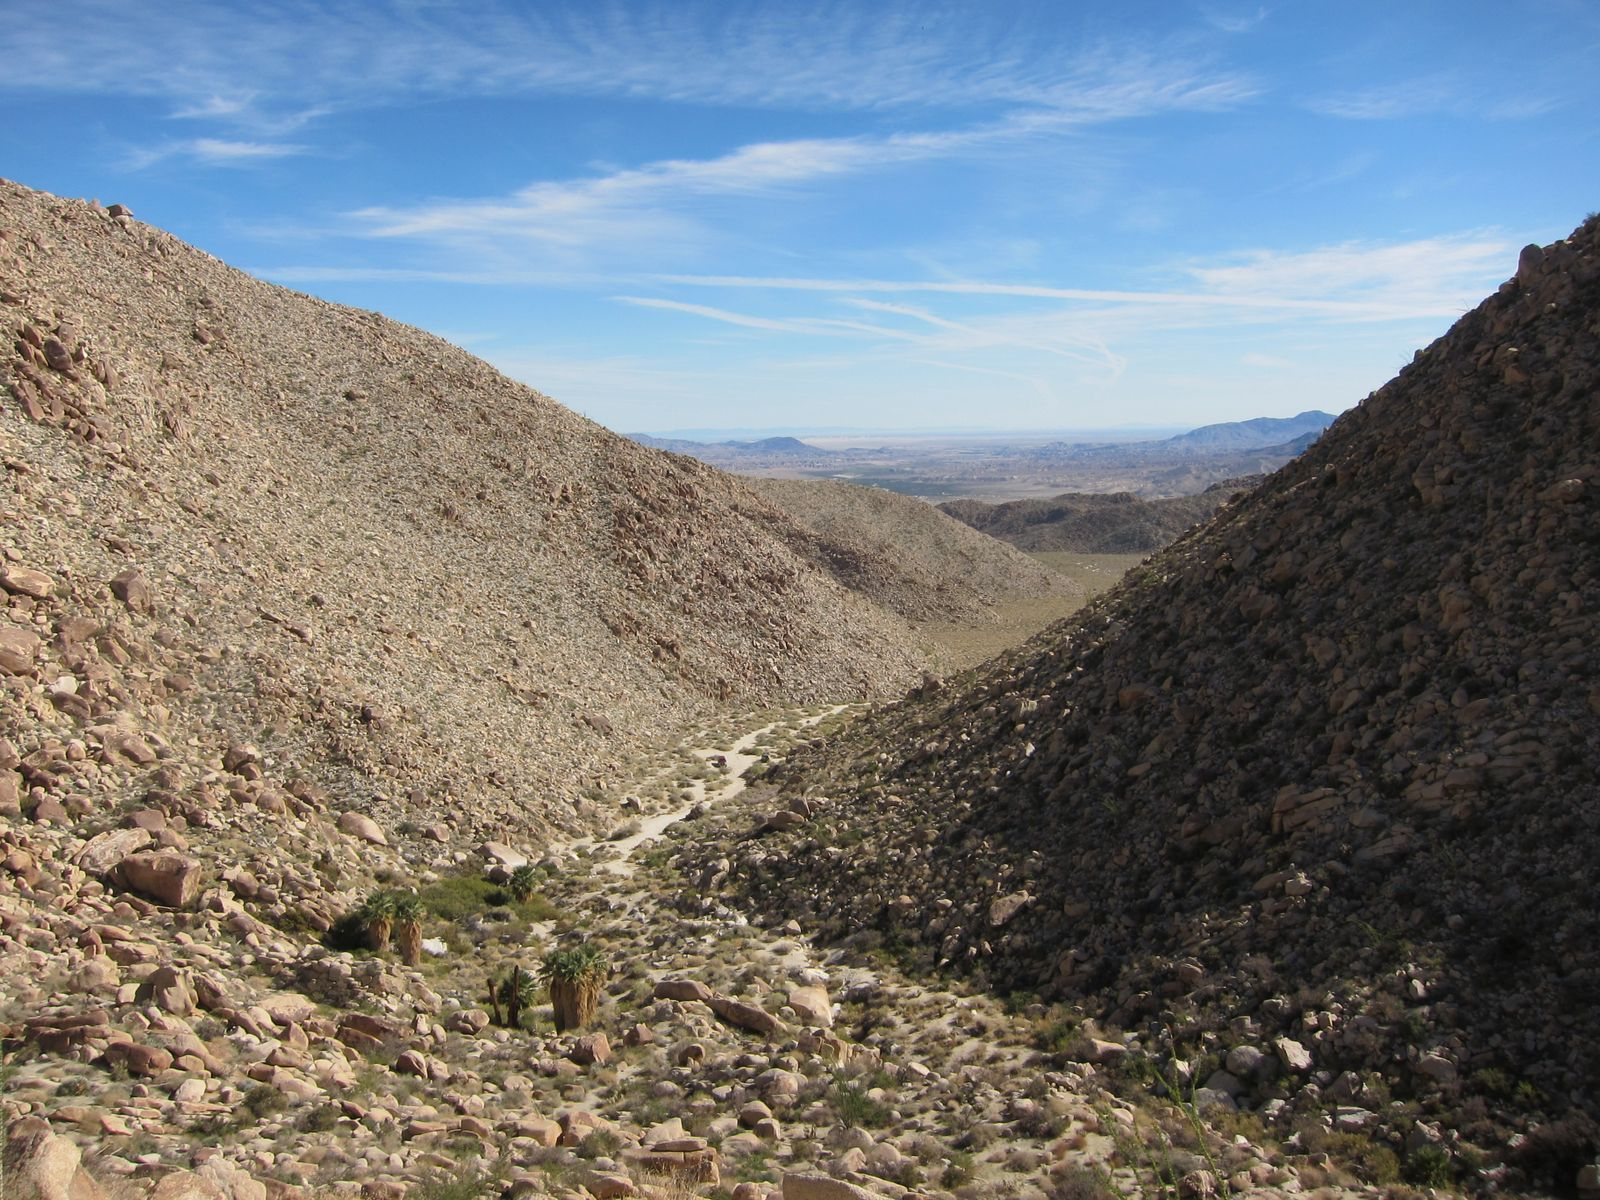 Looking back down into the South Fork of Indian Valley.